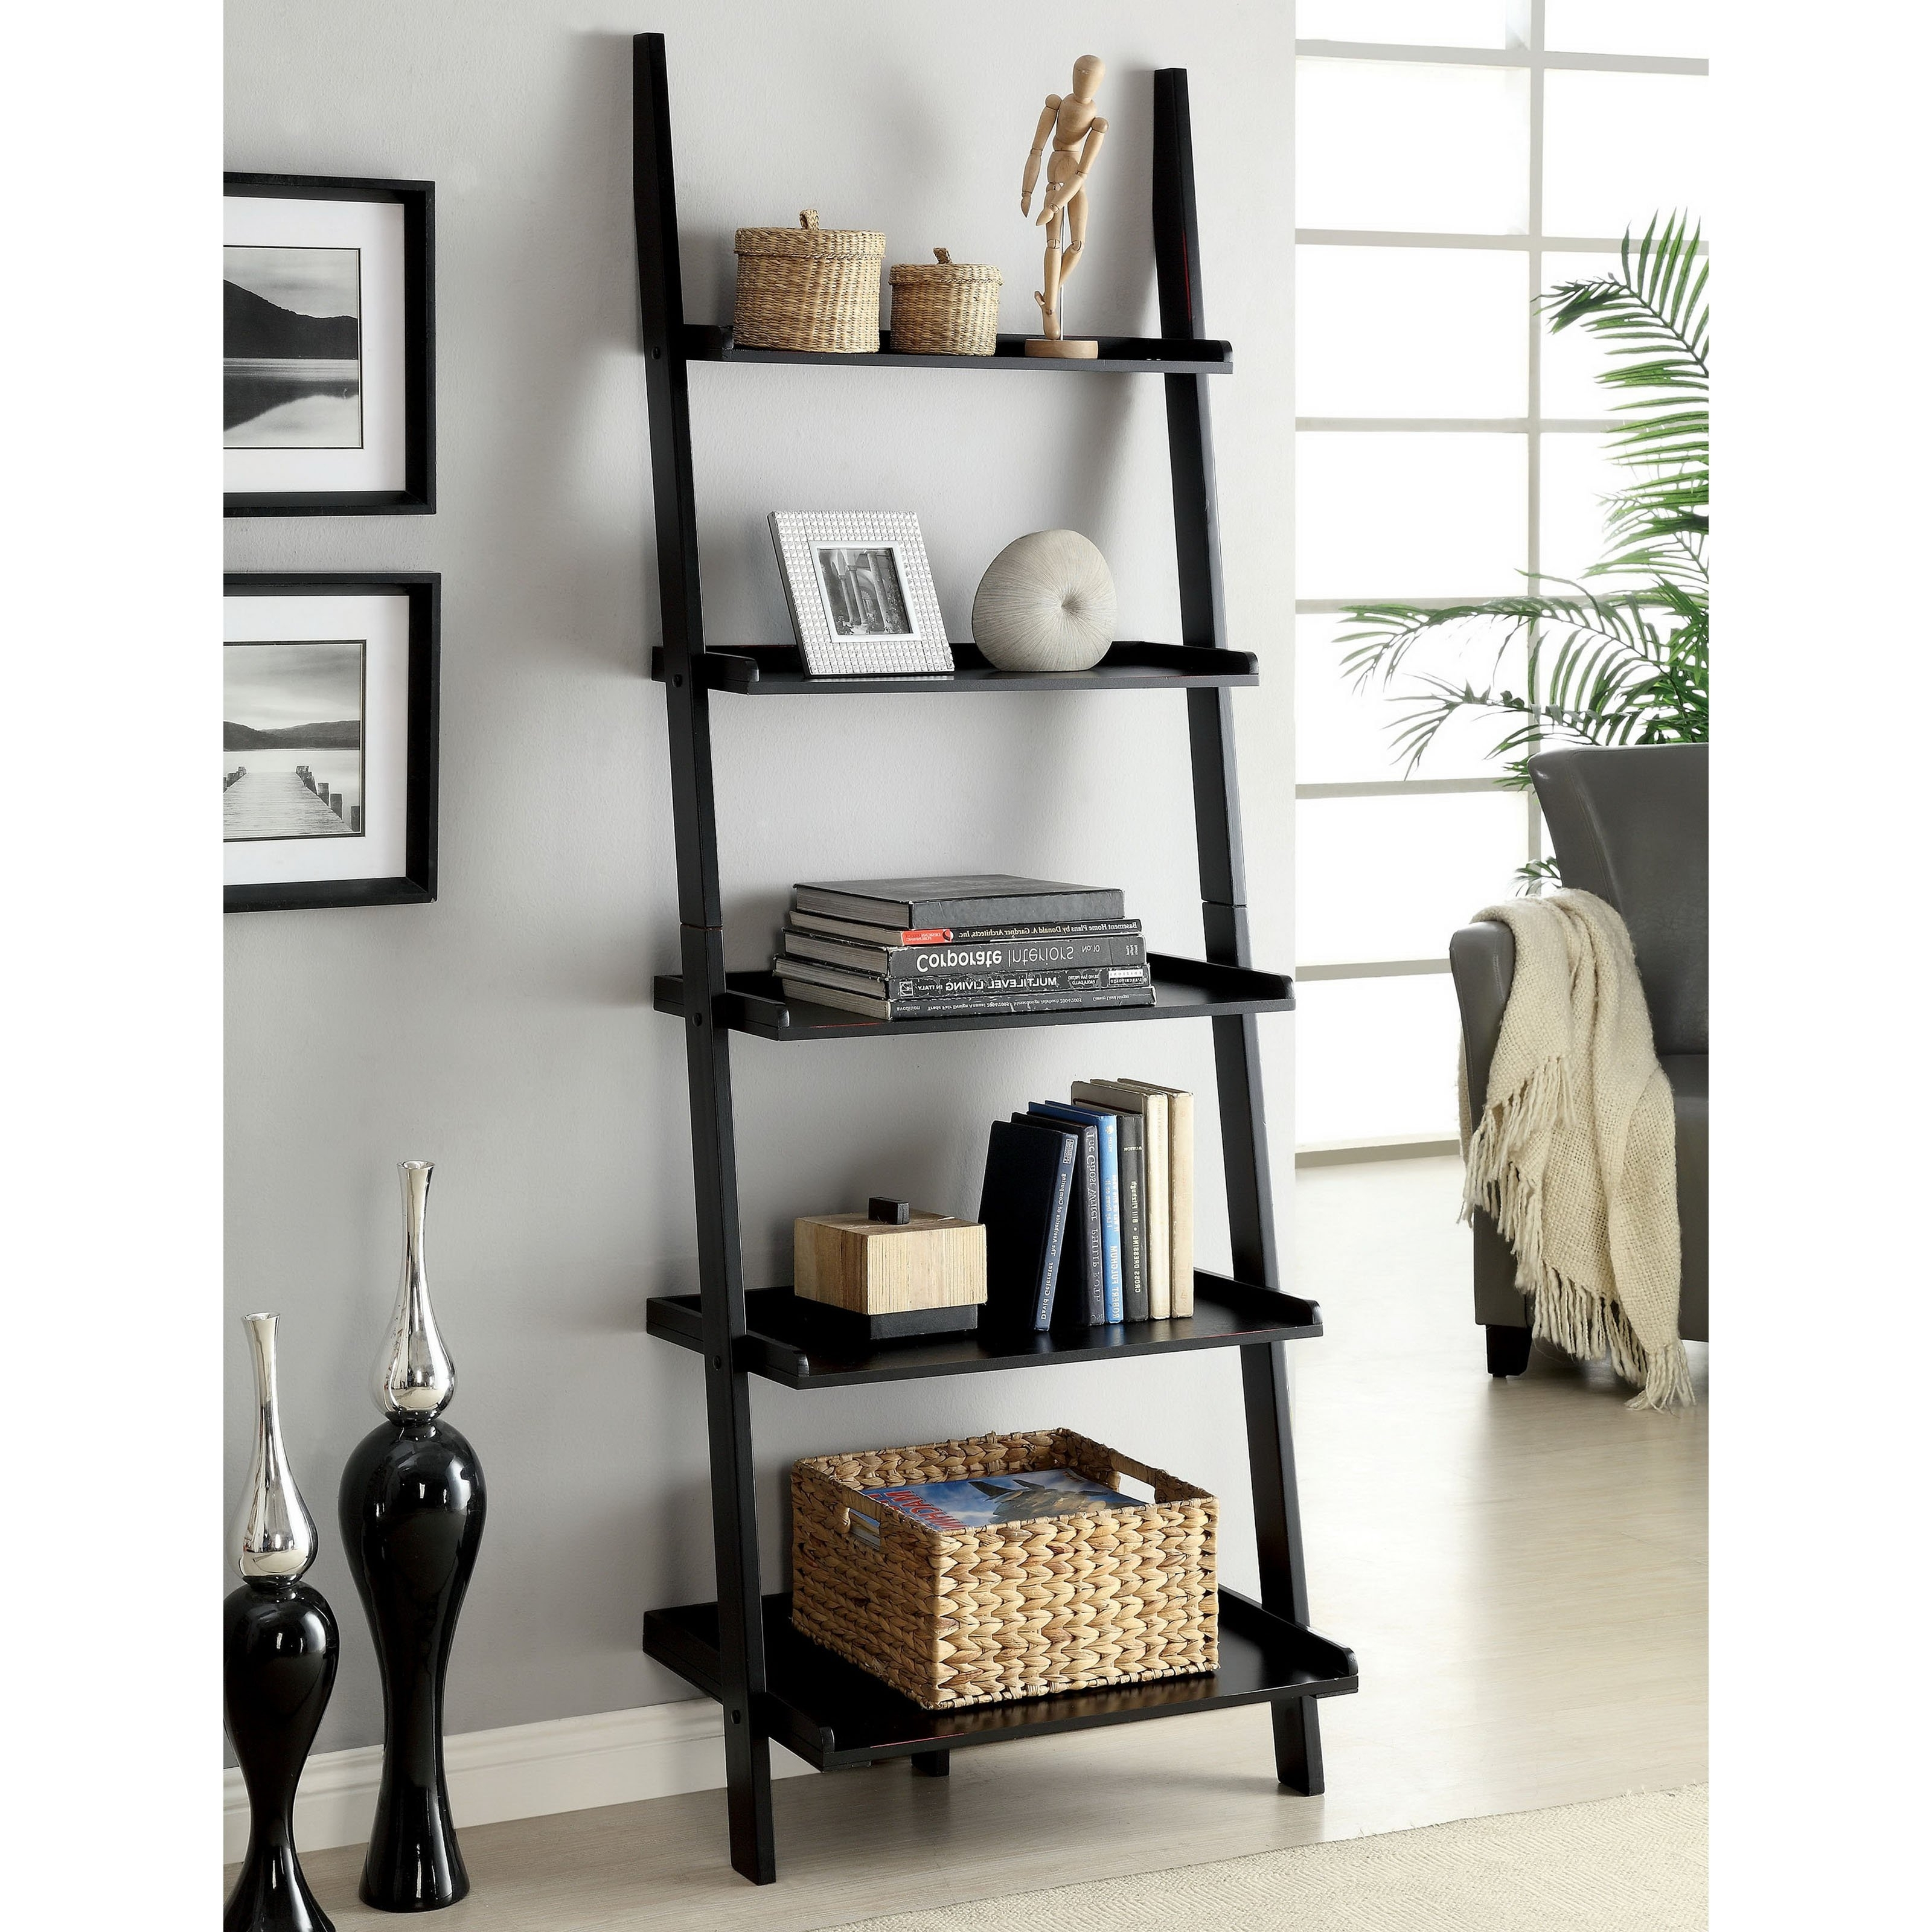 Leaning Shelf Bookcases Within Preferred Bookshelf (View 5 of 15)